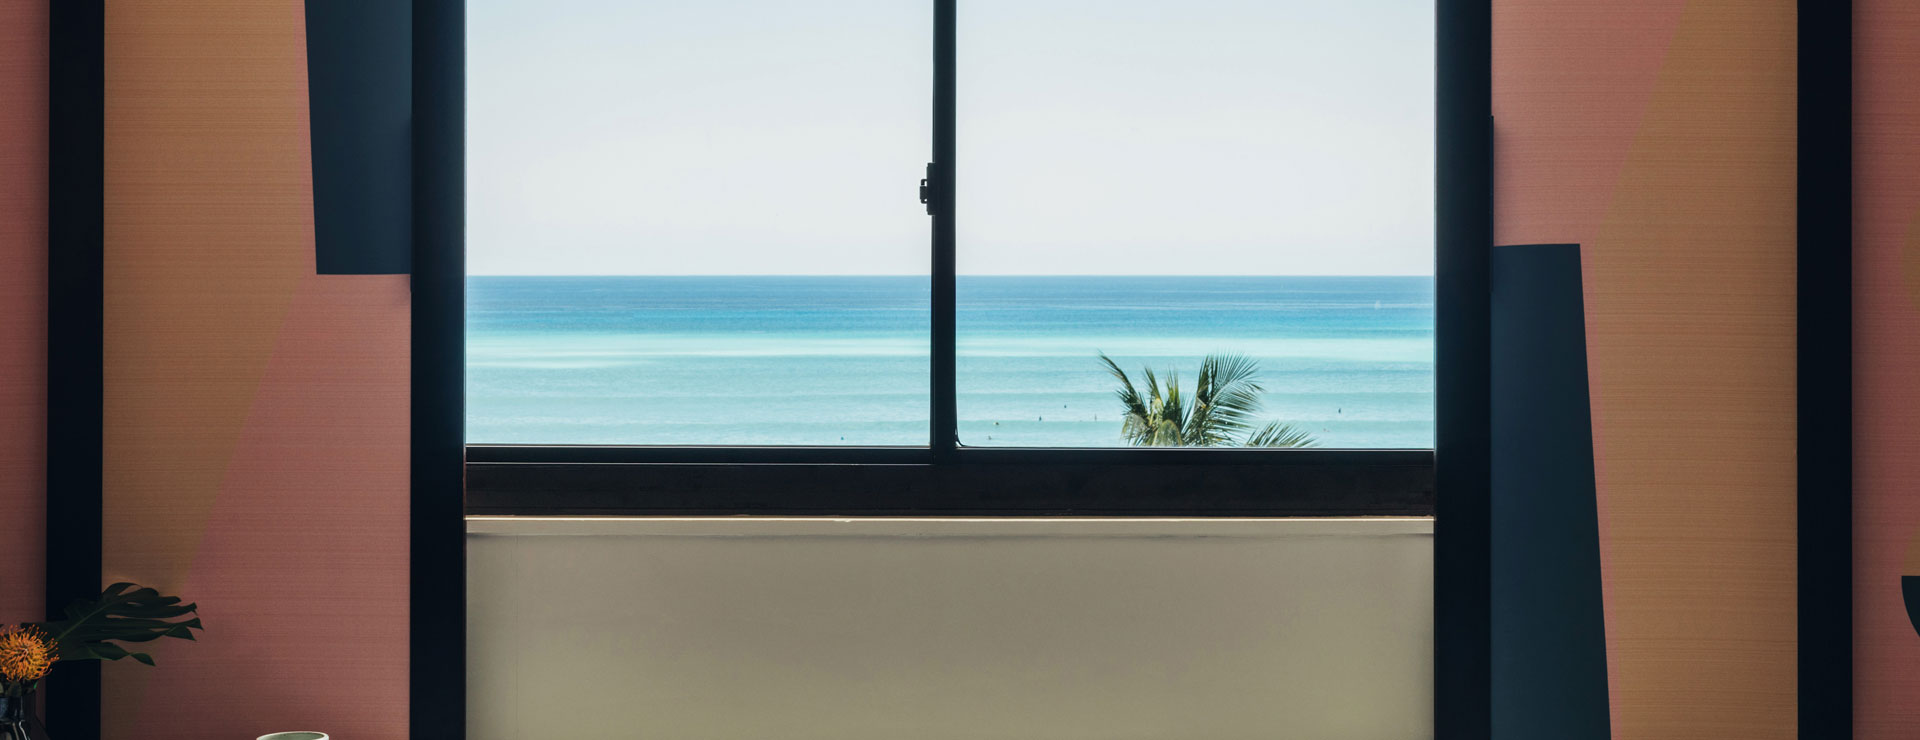 ocean view with pink window shades